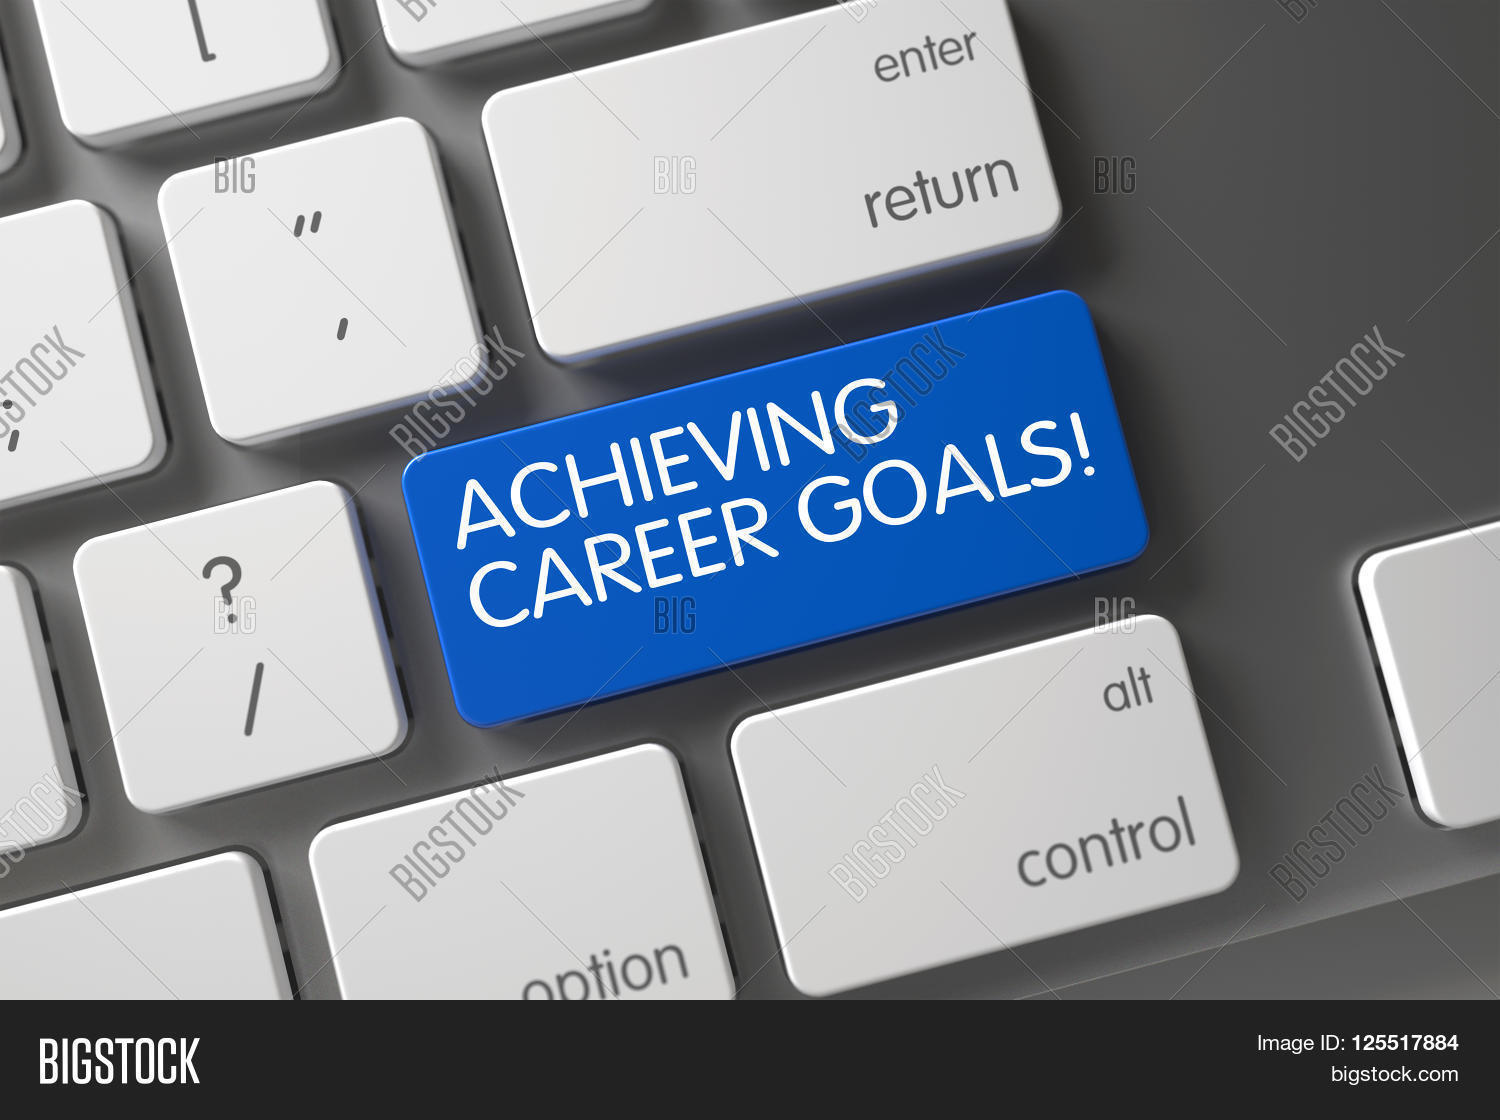 achieving career goals key concept of achieving career goals achieving career goals key concept of achieving career goals achieving career goals on